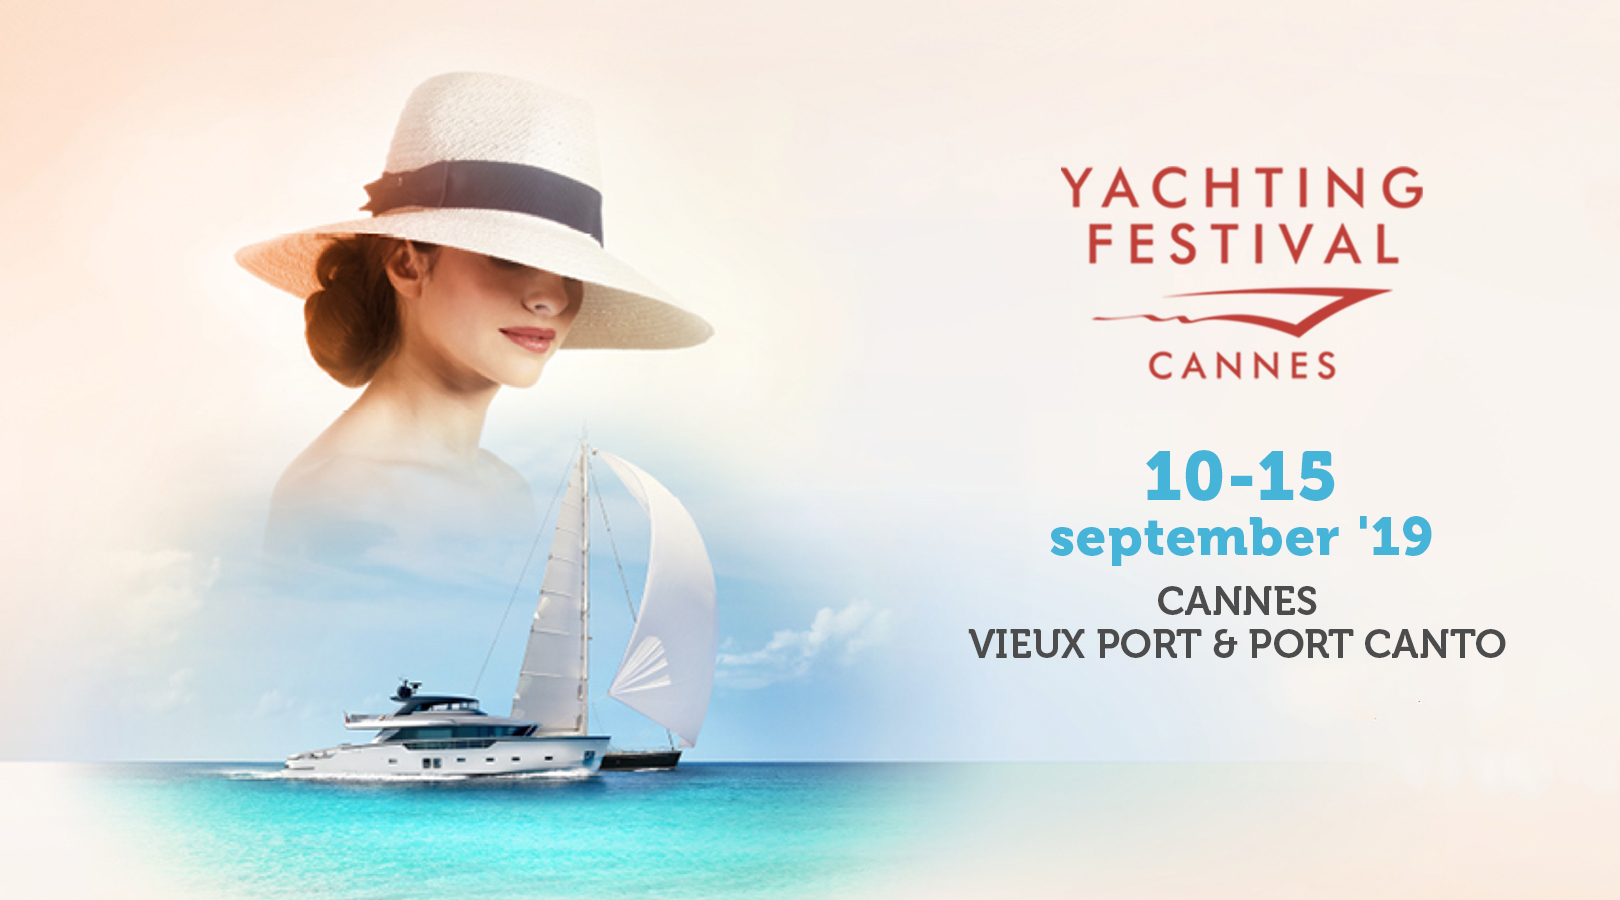 Yachting Festival cannes - Bcool